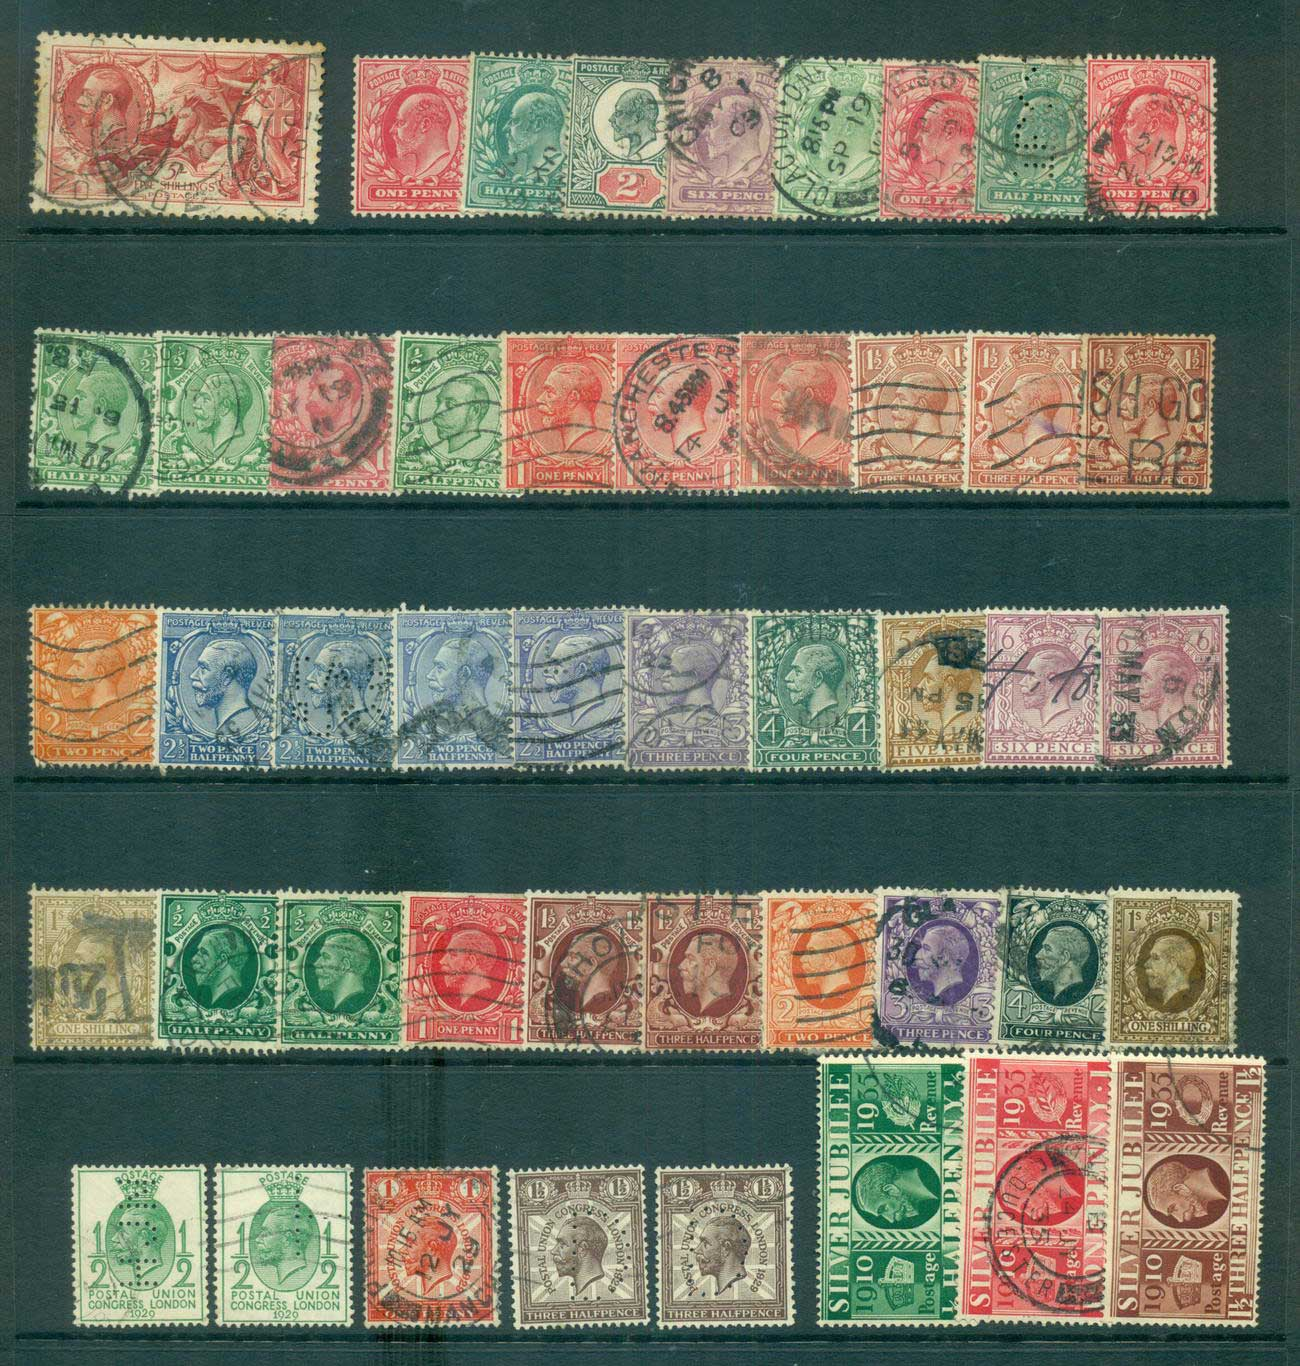 GB 1902 on KEVII & KGV Assorted Oddments FU lot53610